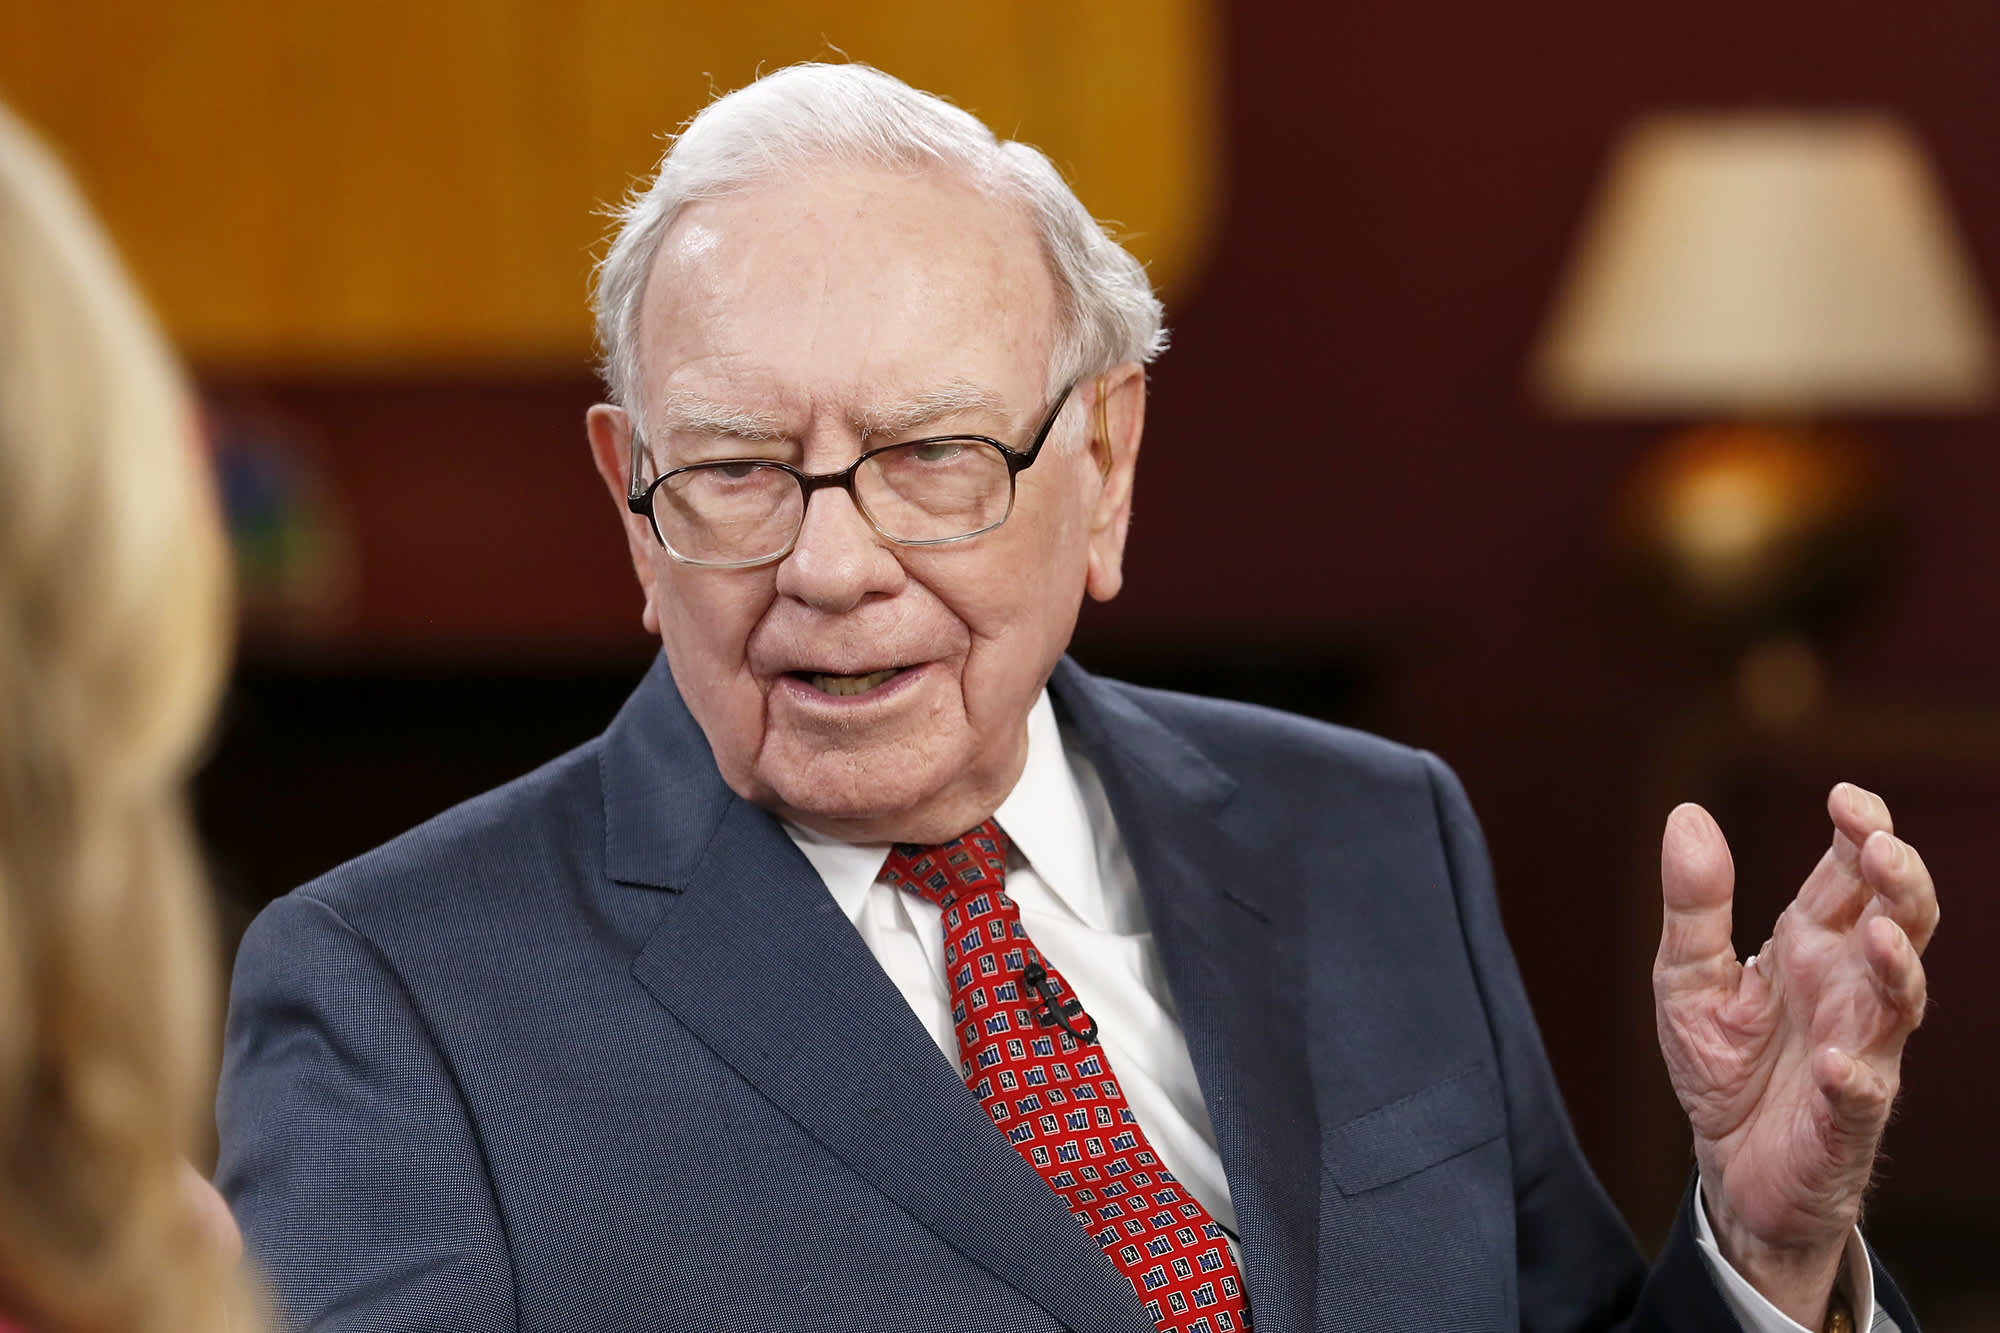 Berkshire Hathaway battered by Kraft-Heinz woes, posts $15K loss in Q4 and a $3 billion writedown